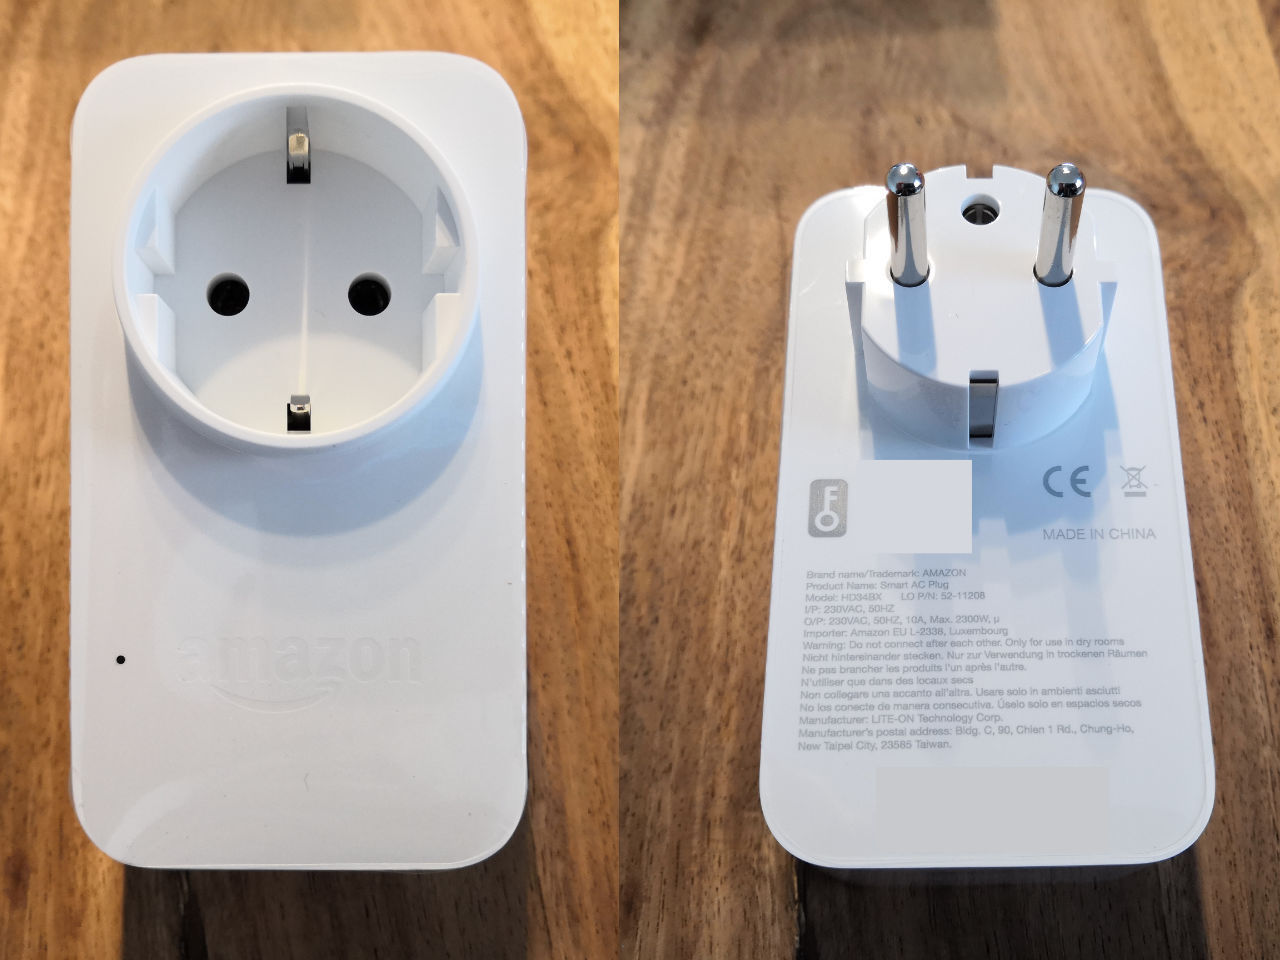 Steckdosen Amazon Test Amazon Smart Plug Wlan Steckdose Für Amazon Alexa